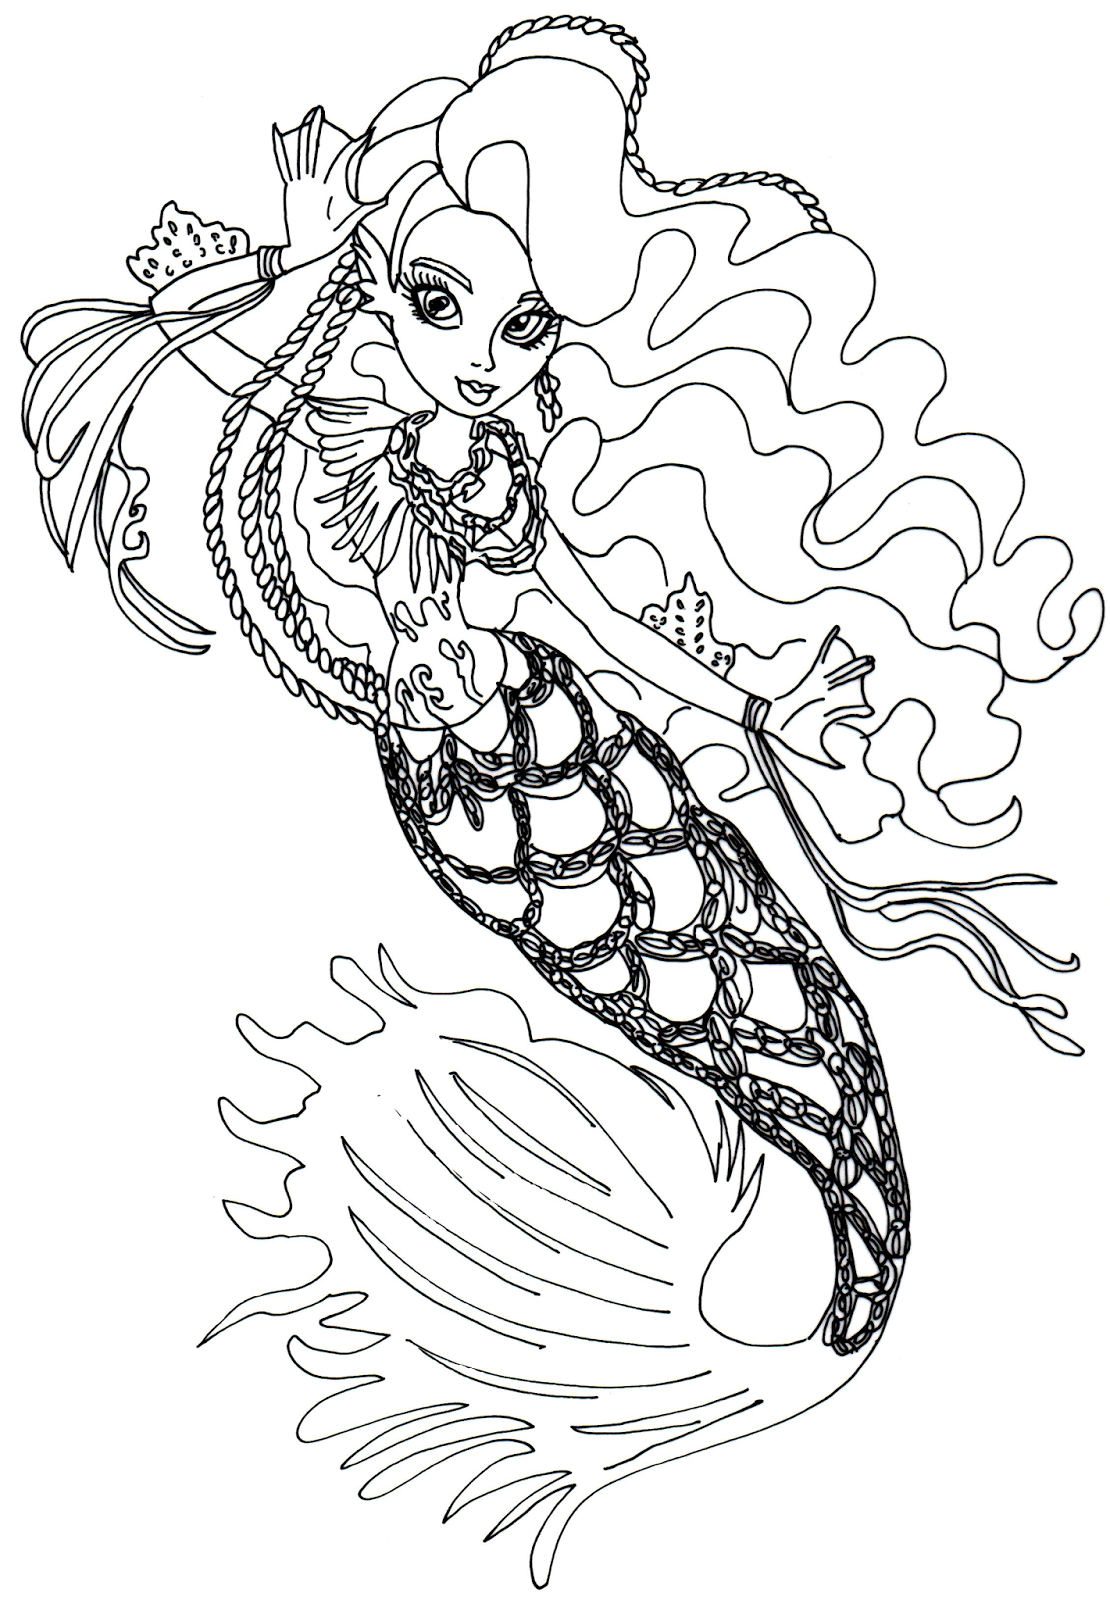 Clean image intended for free monster high printable